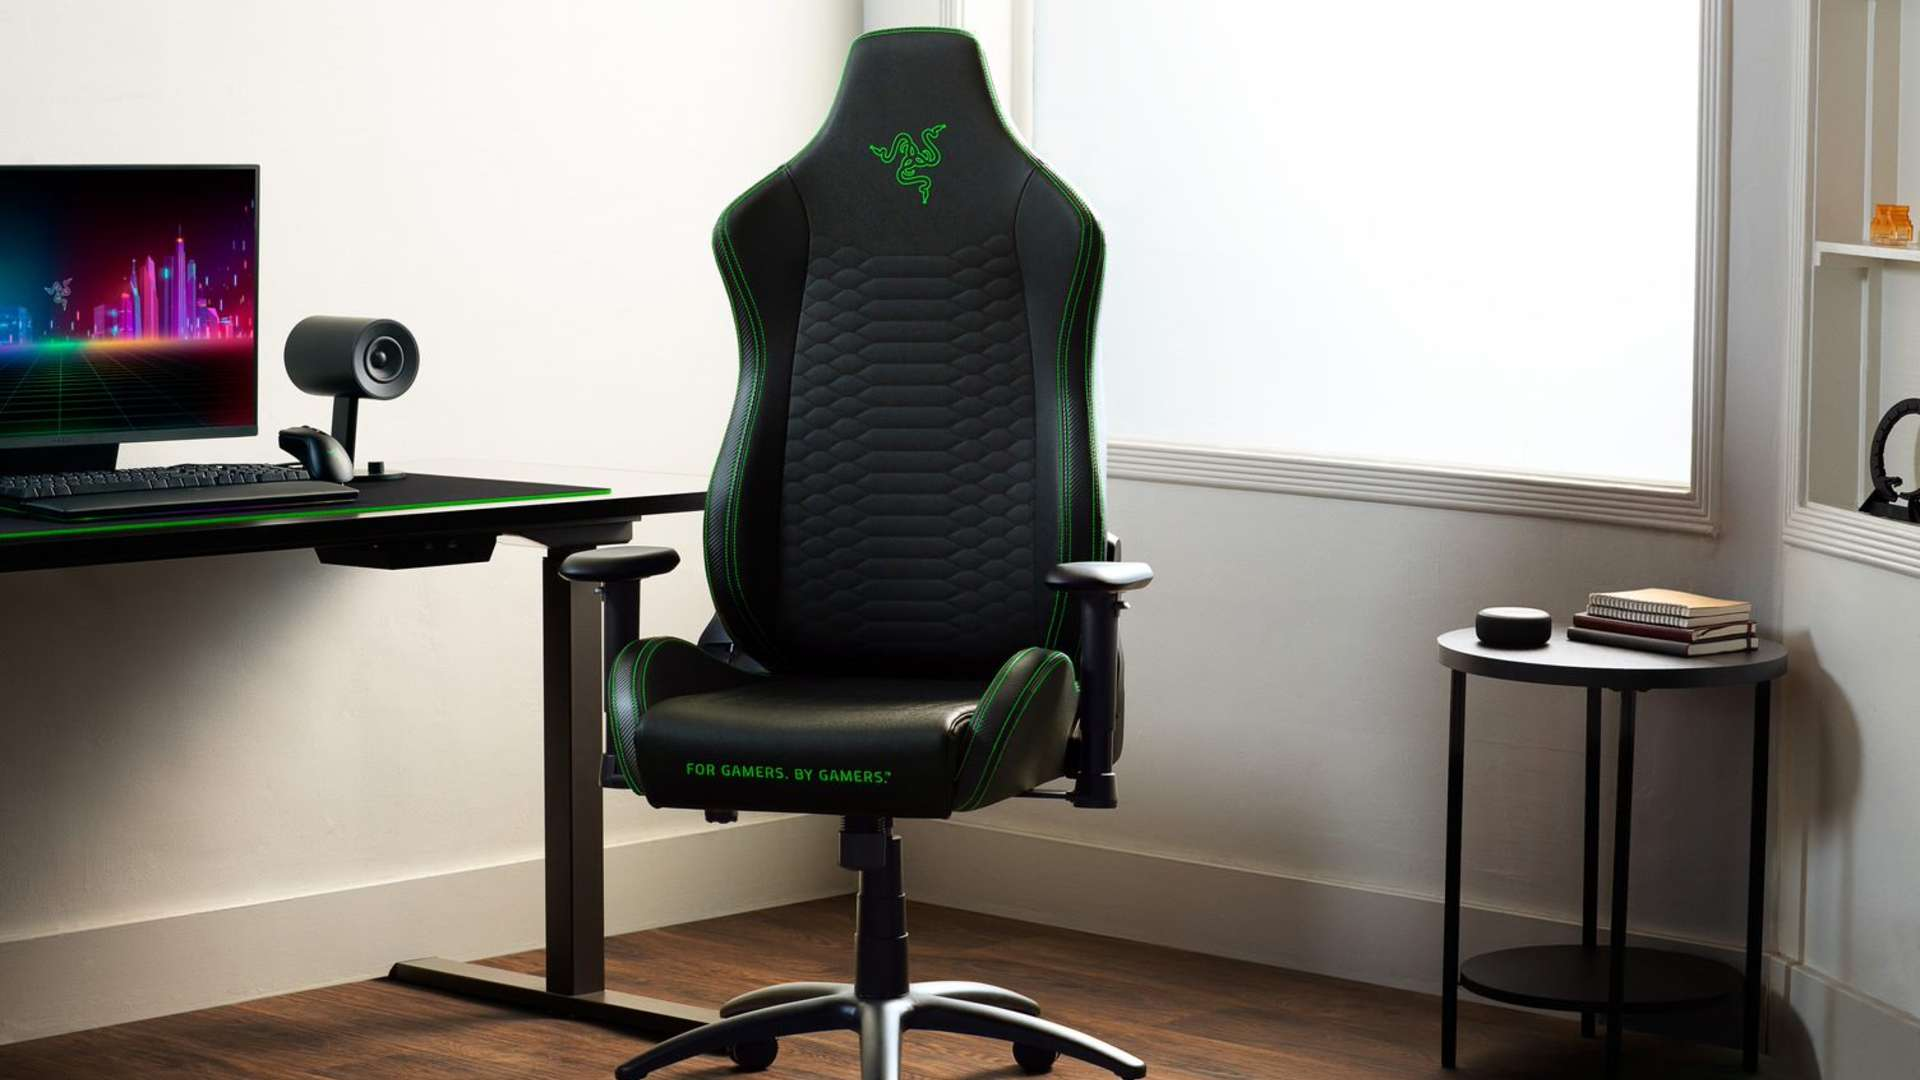 New Razer gaming chair is cheaper and named after its gaming headsets